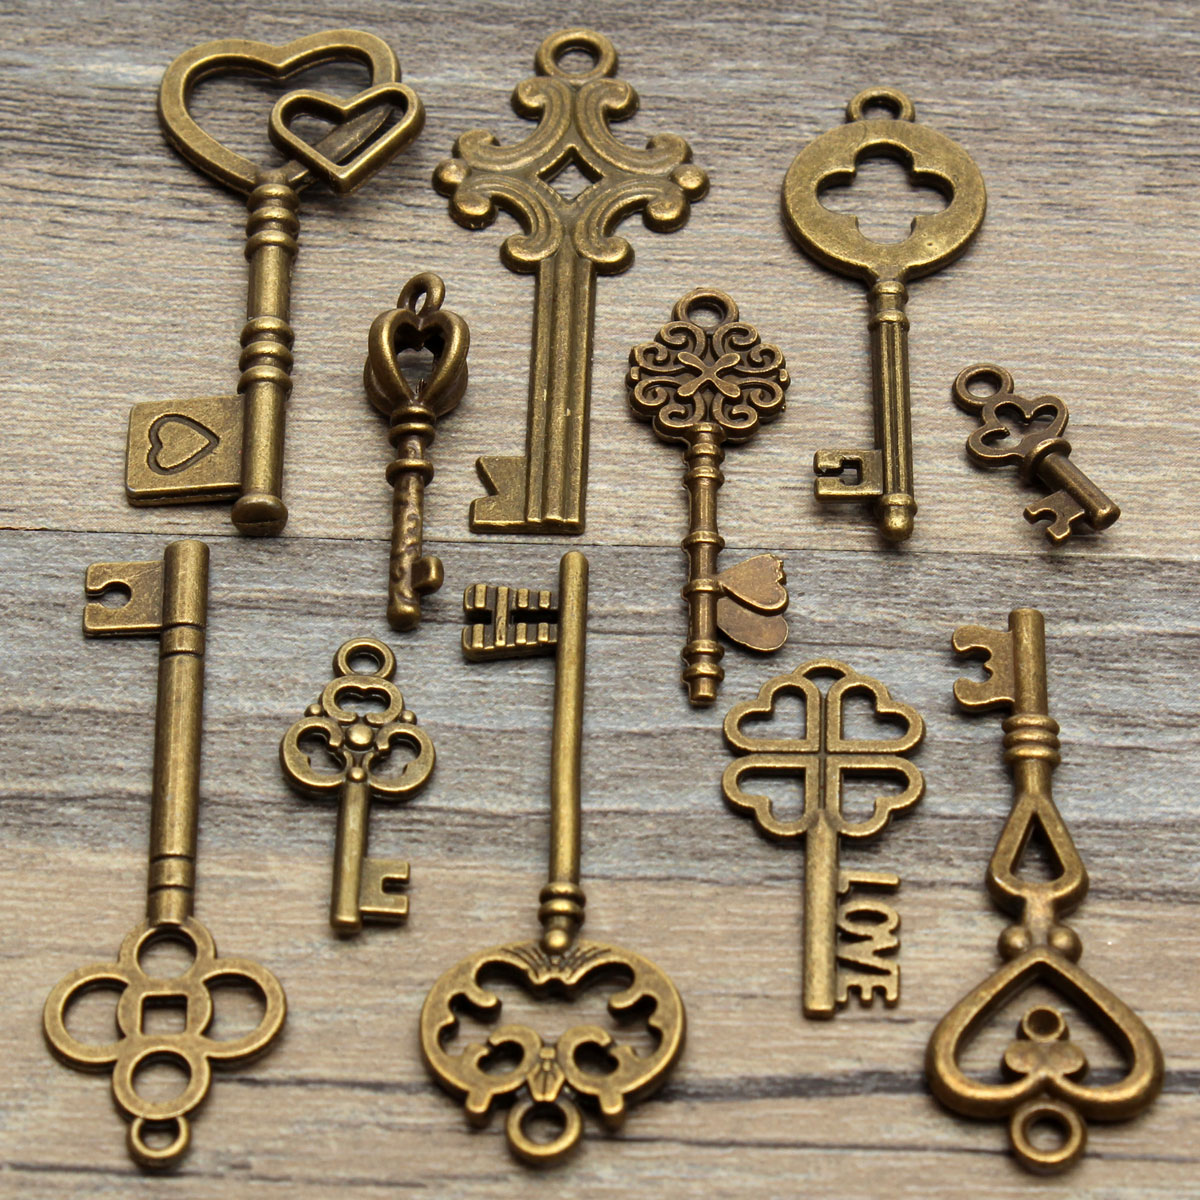 Set Of 11 Antique Vintage Old Look Skeleton Key Pendant Heart Bow Lock Steampunk